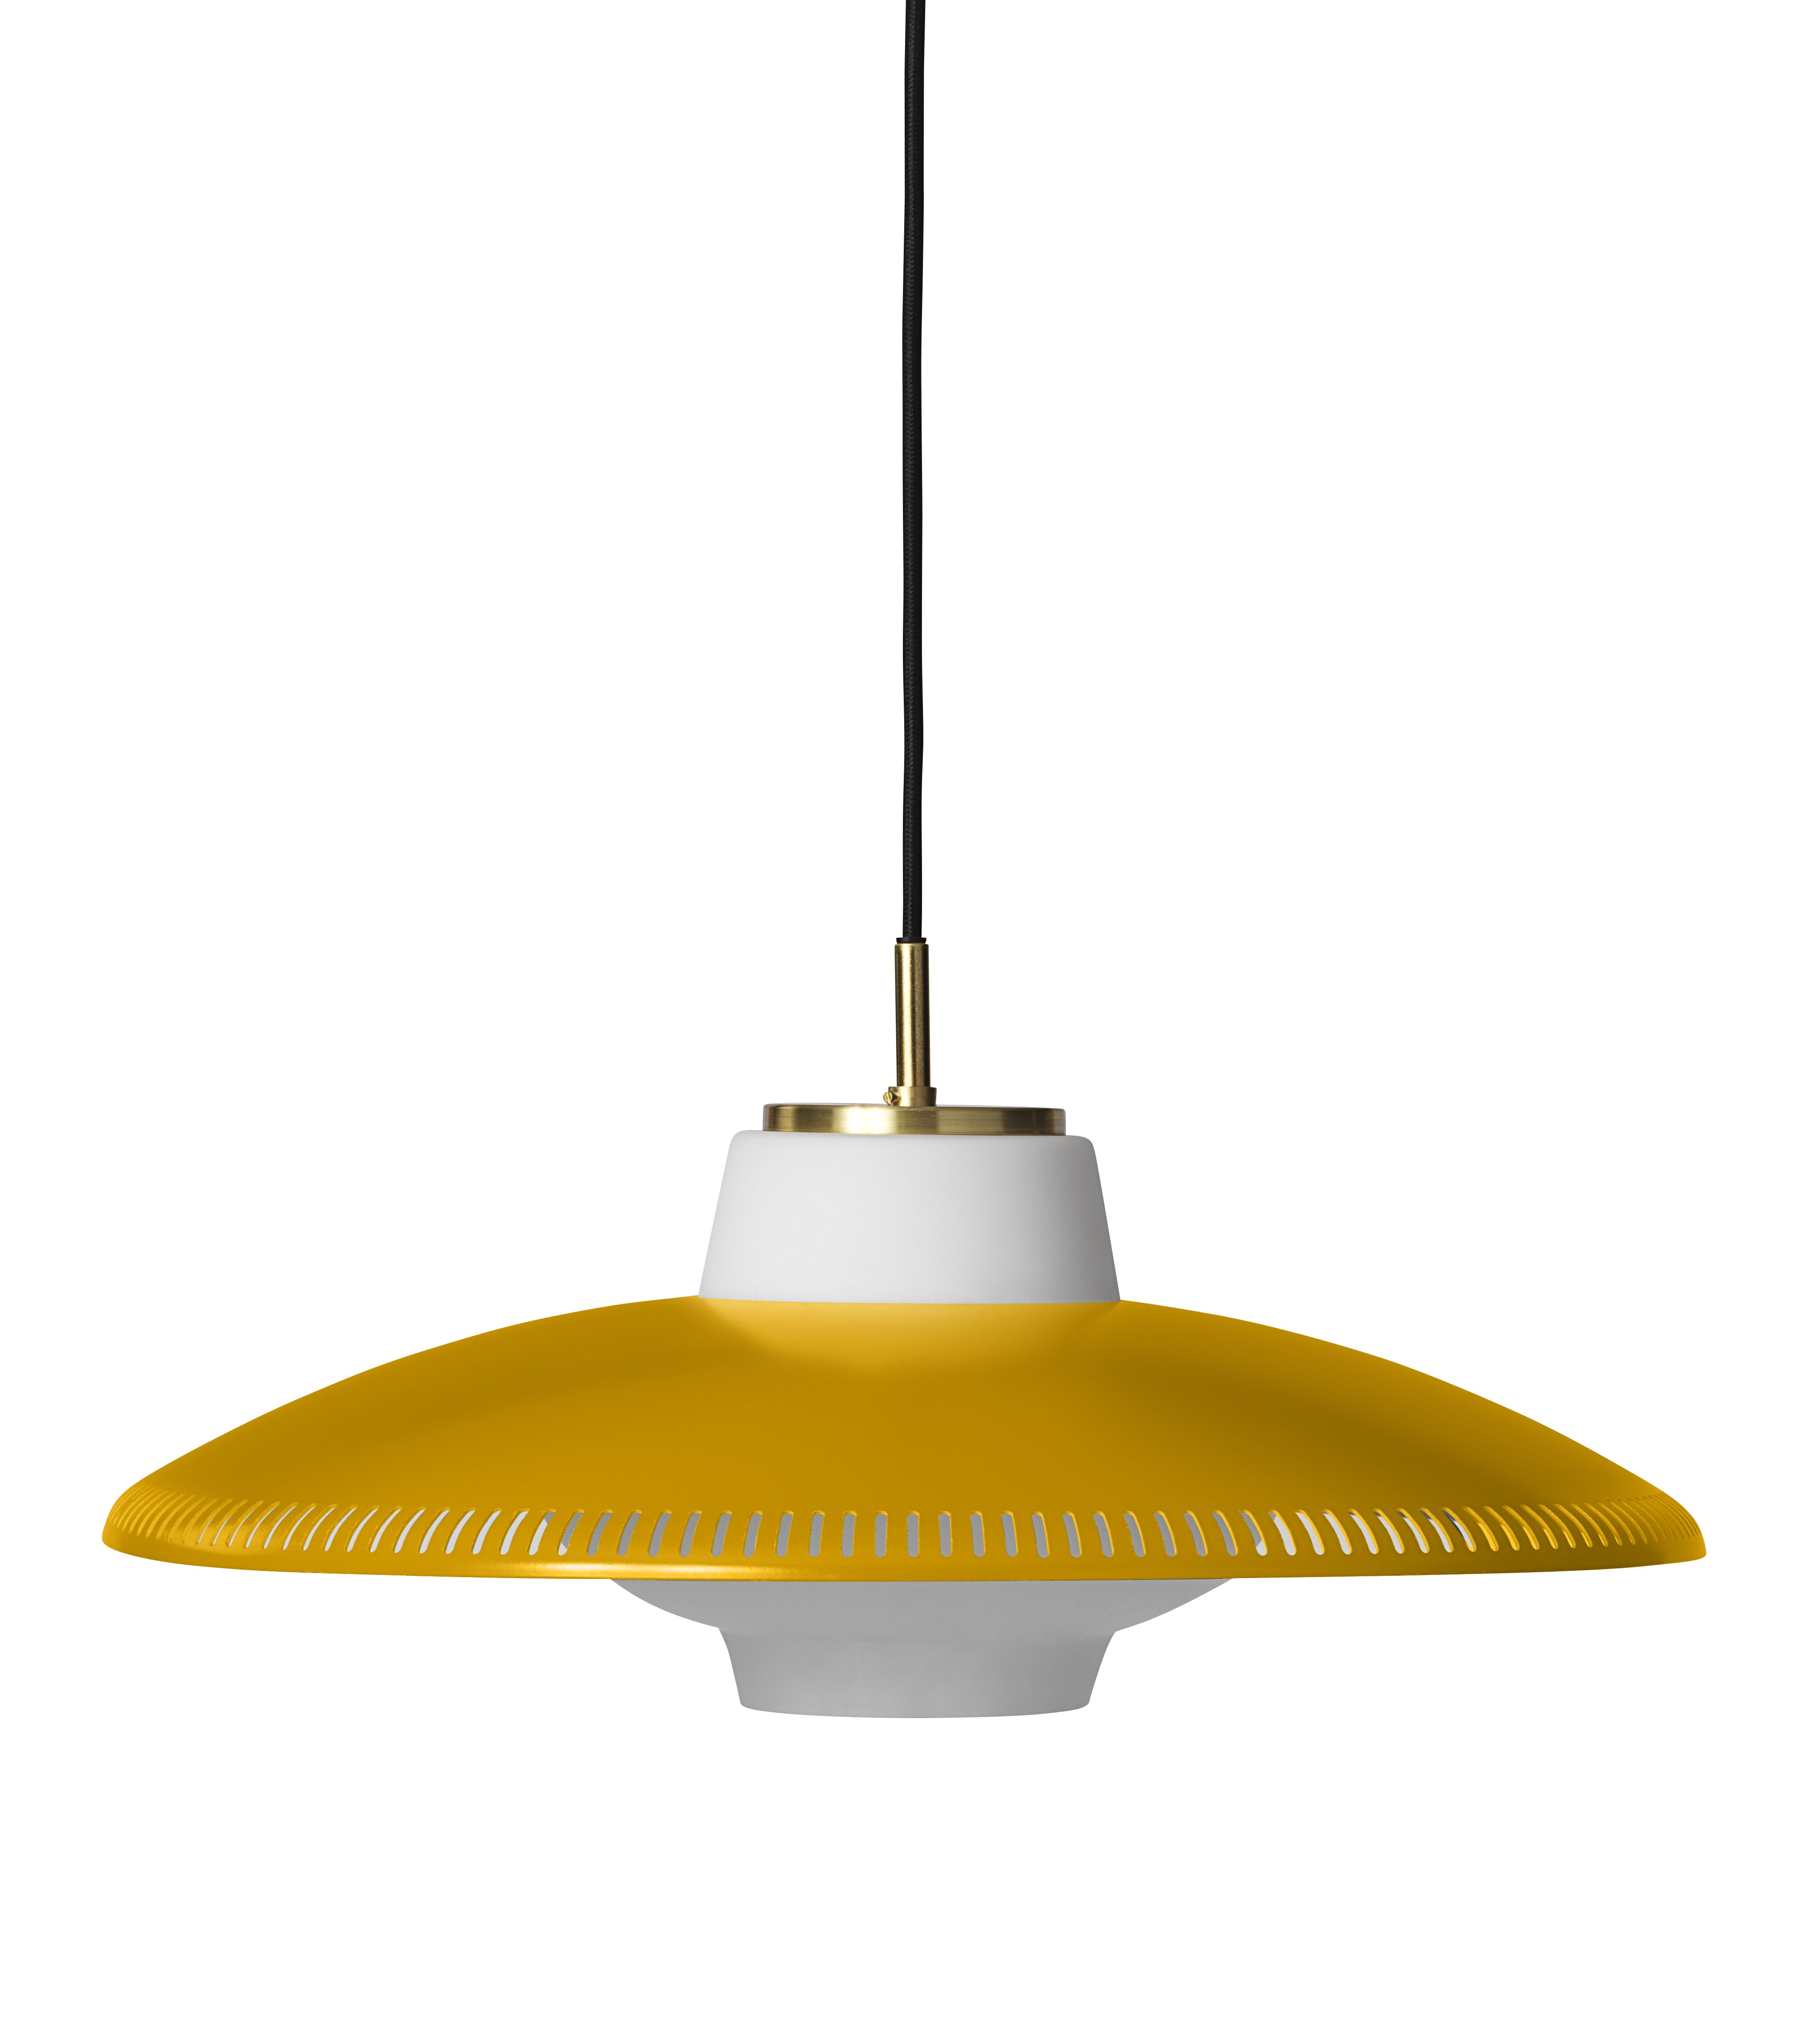 Warm Nordic - Opal Shade -pendant-lamp - Svend Aage Holm Sørensen